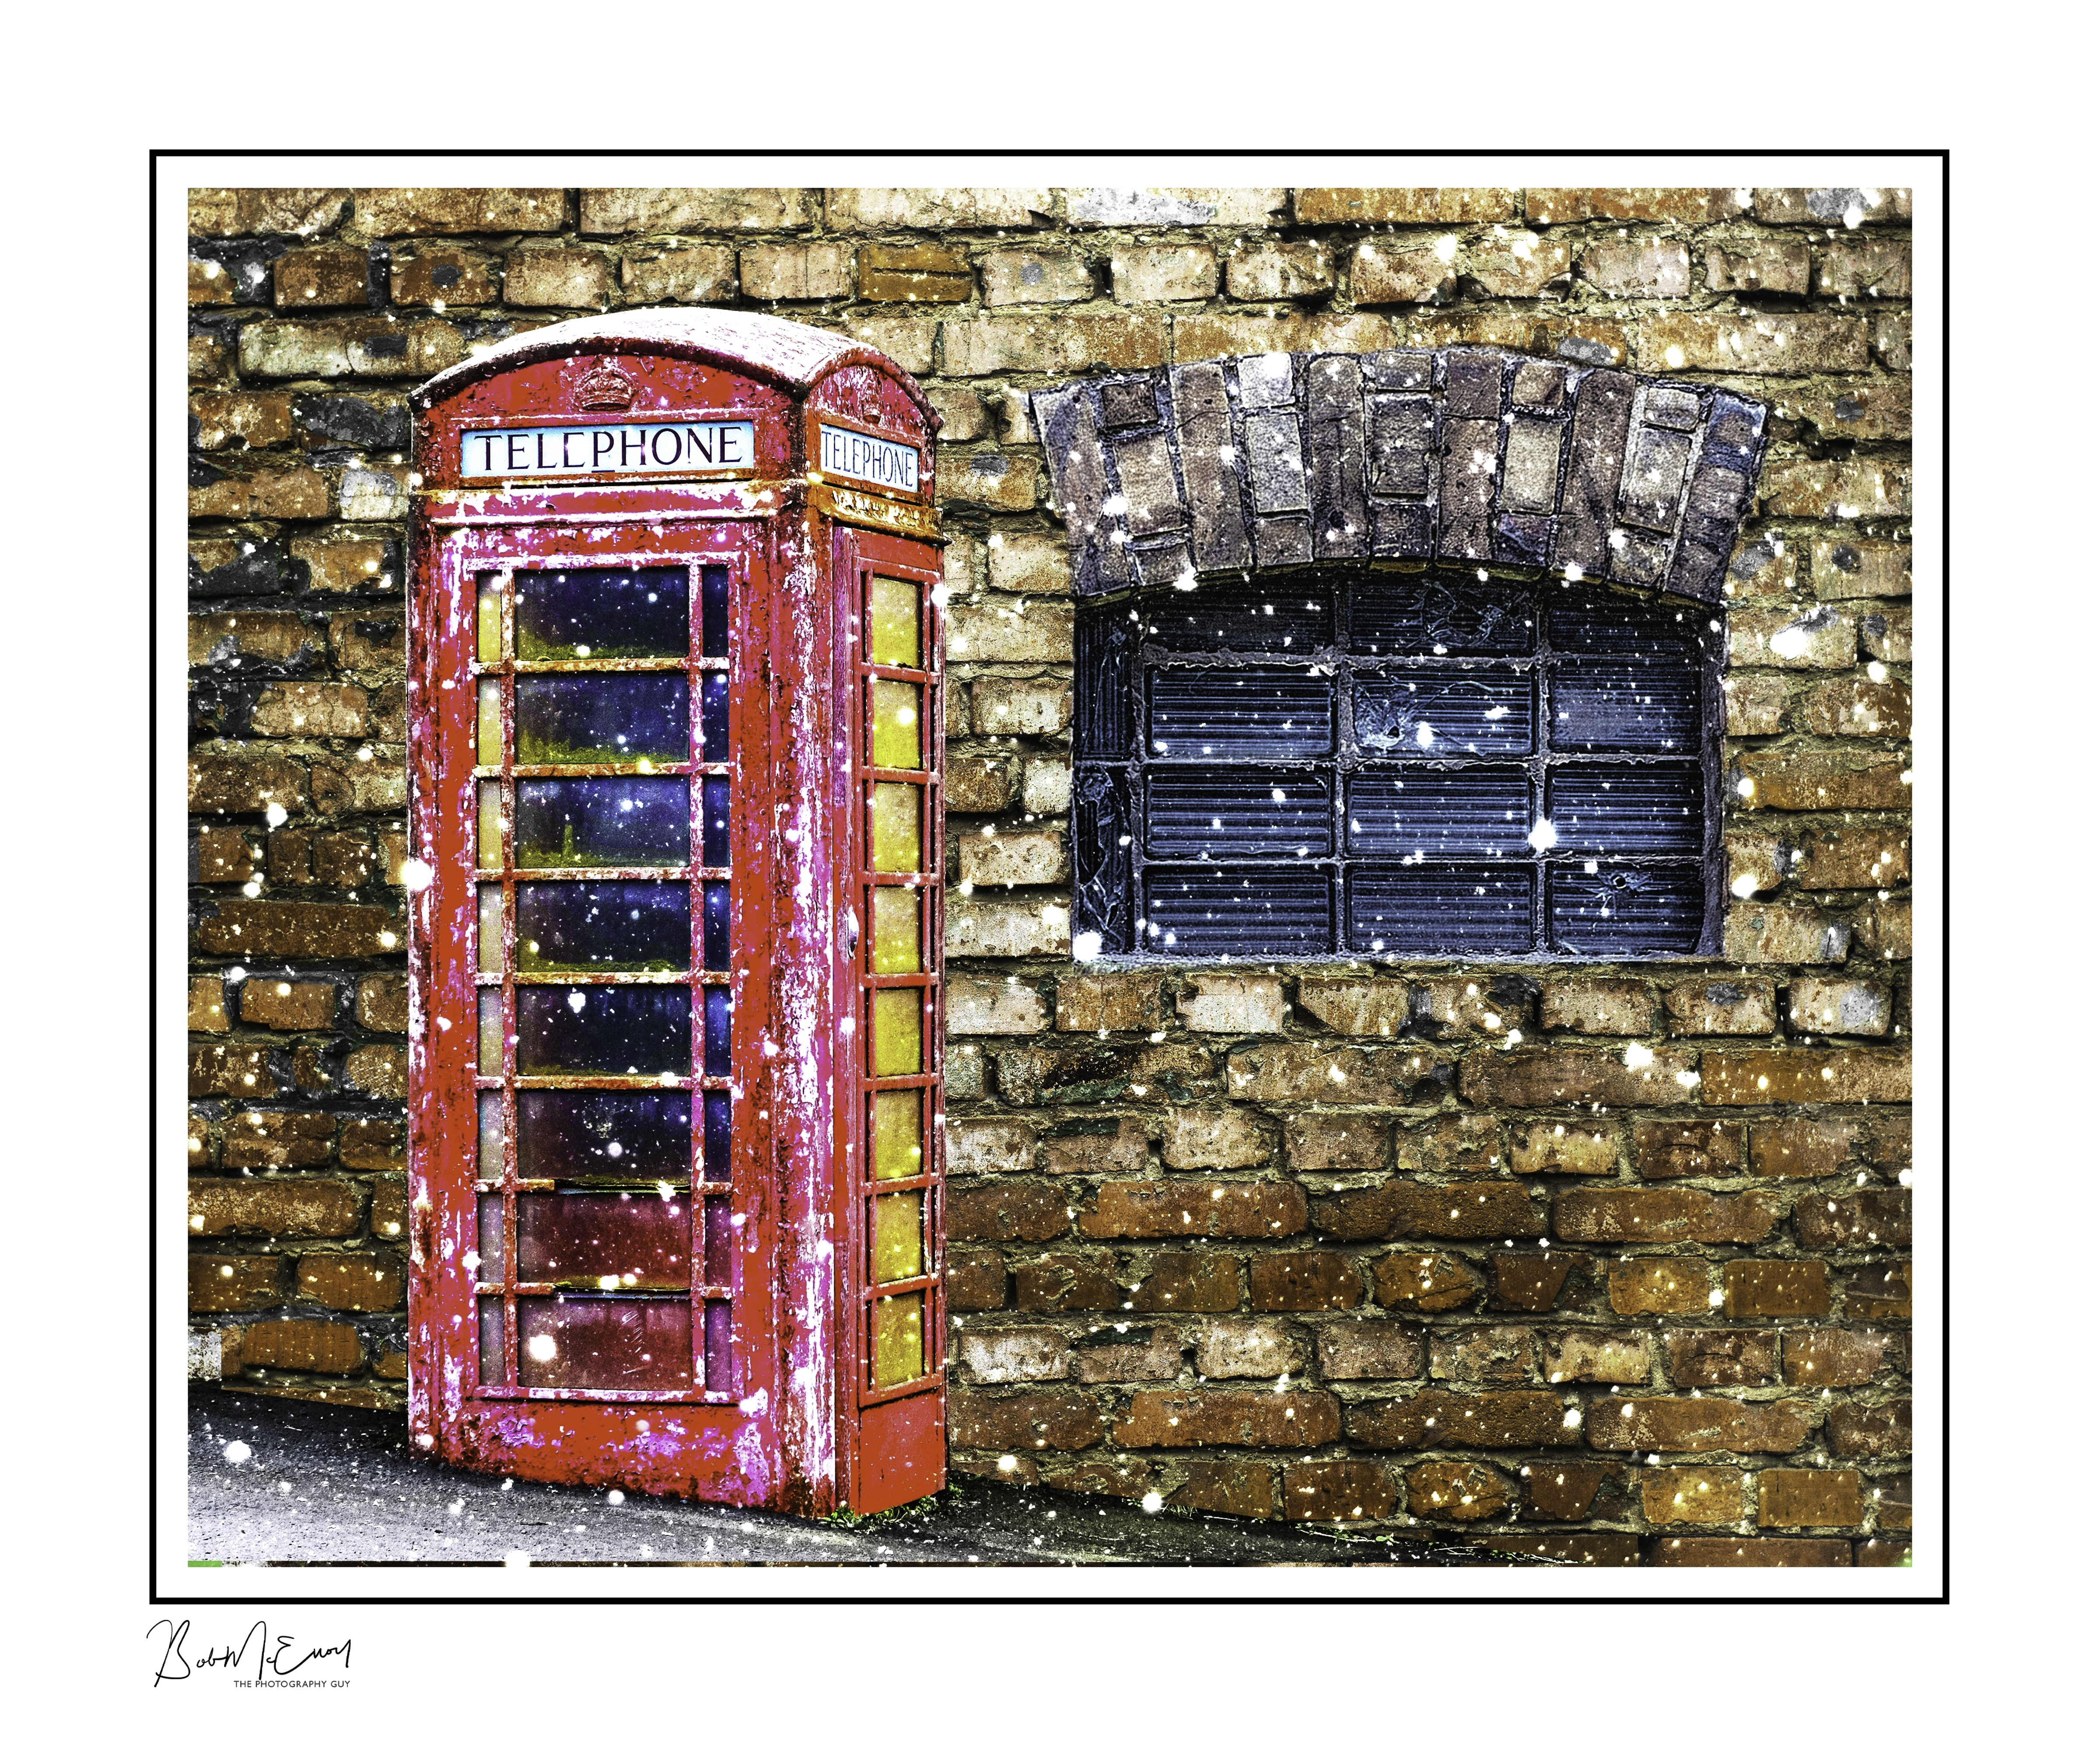 Telephone box_2